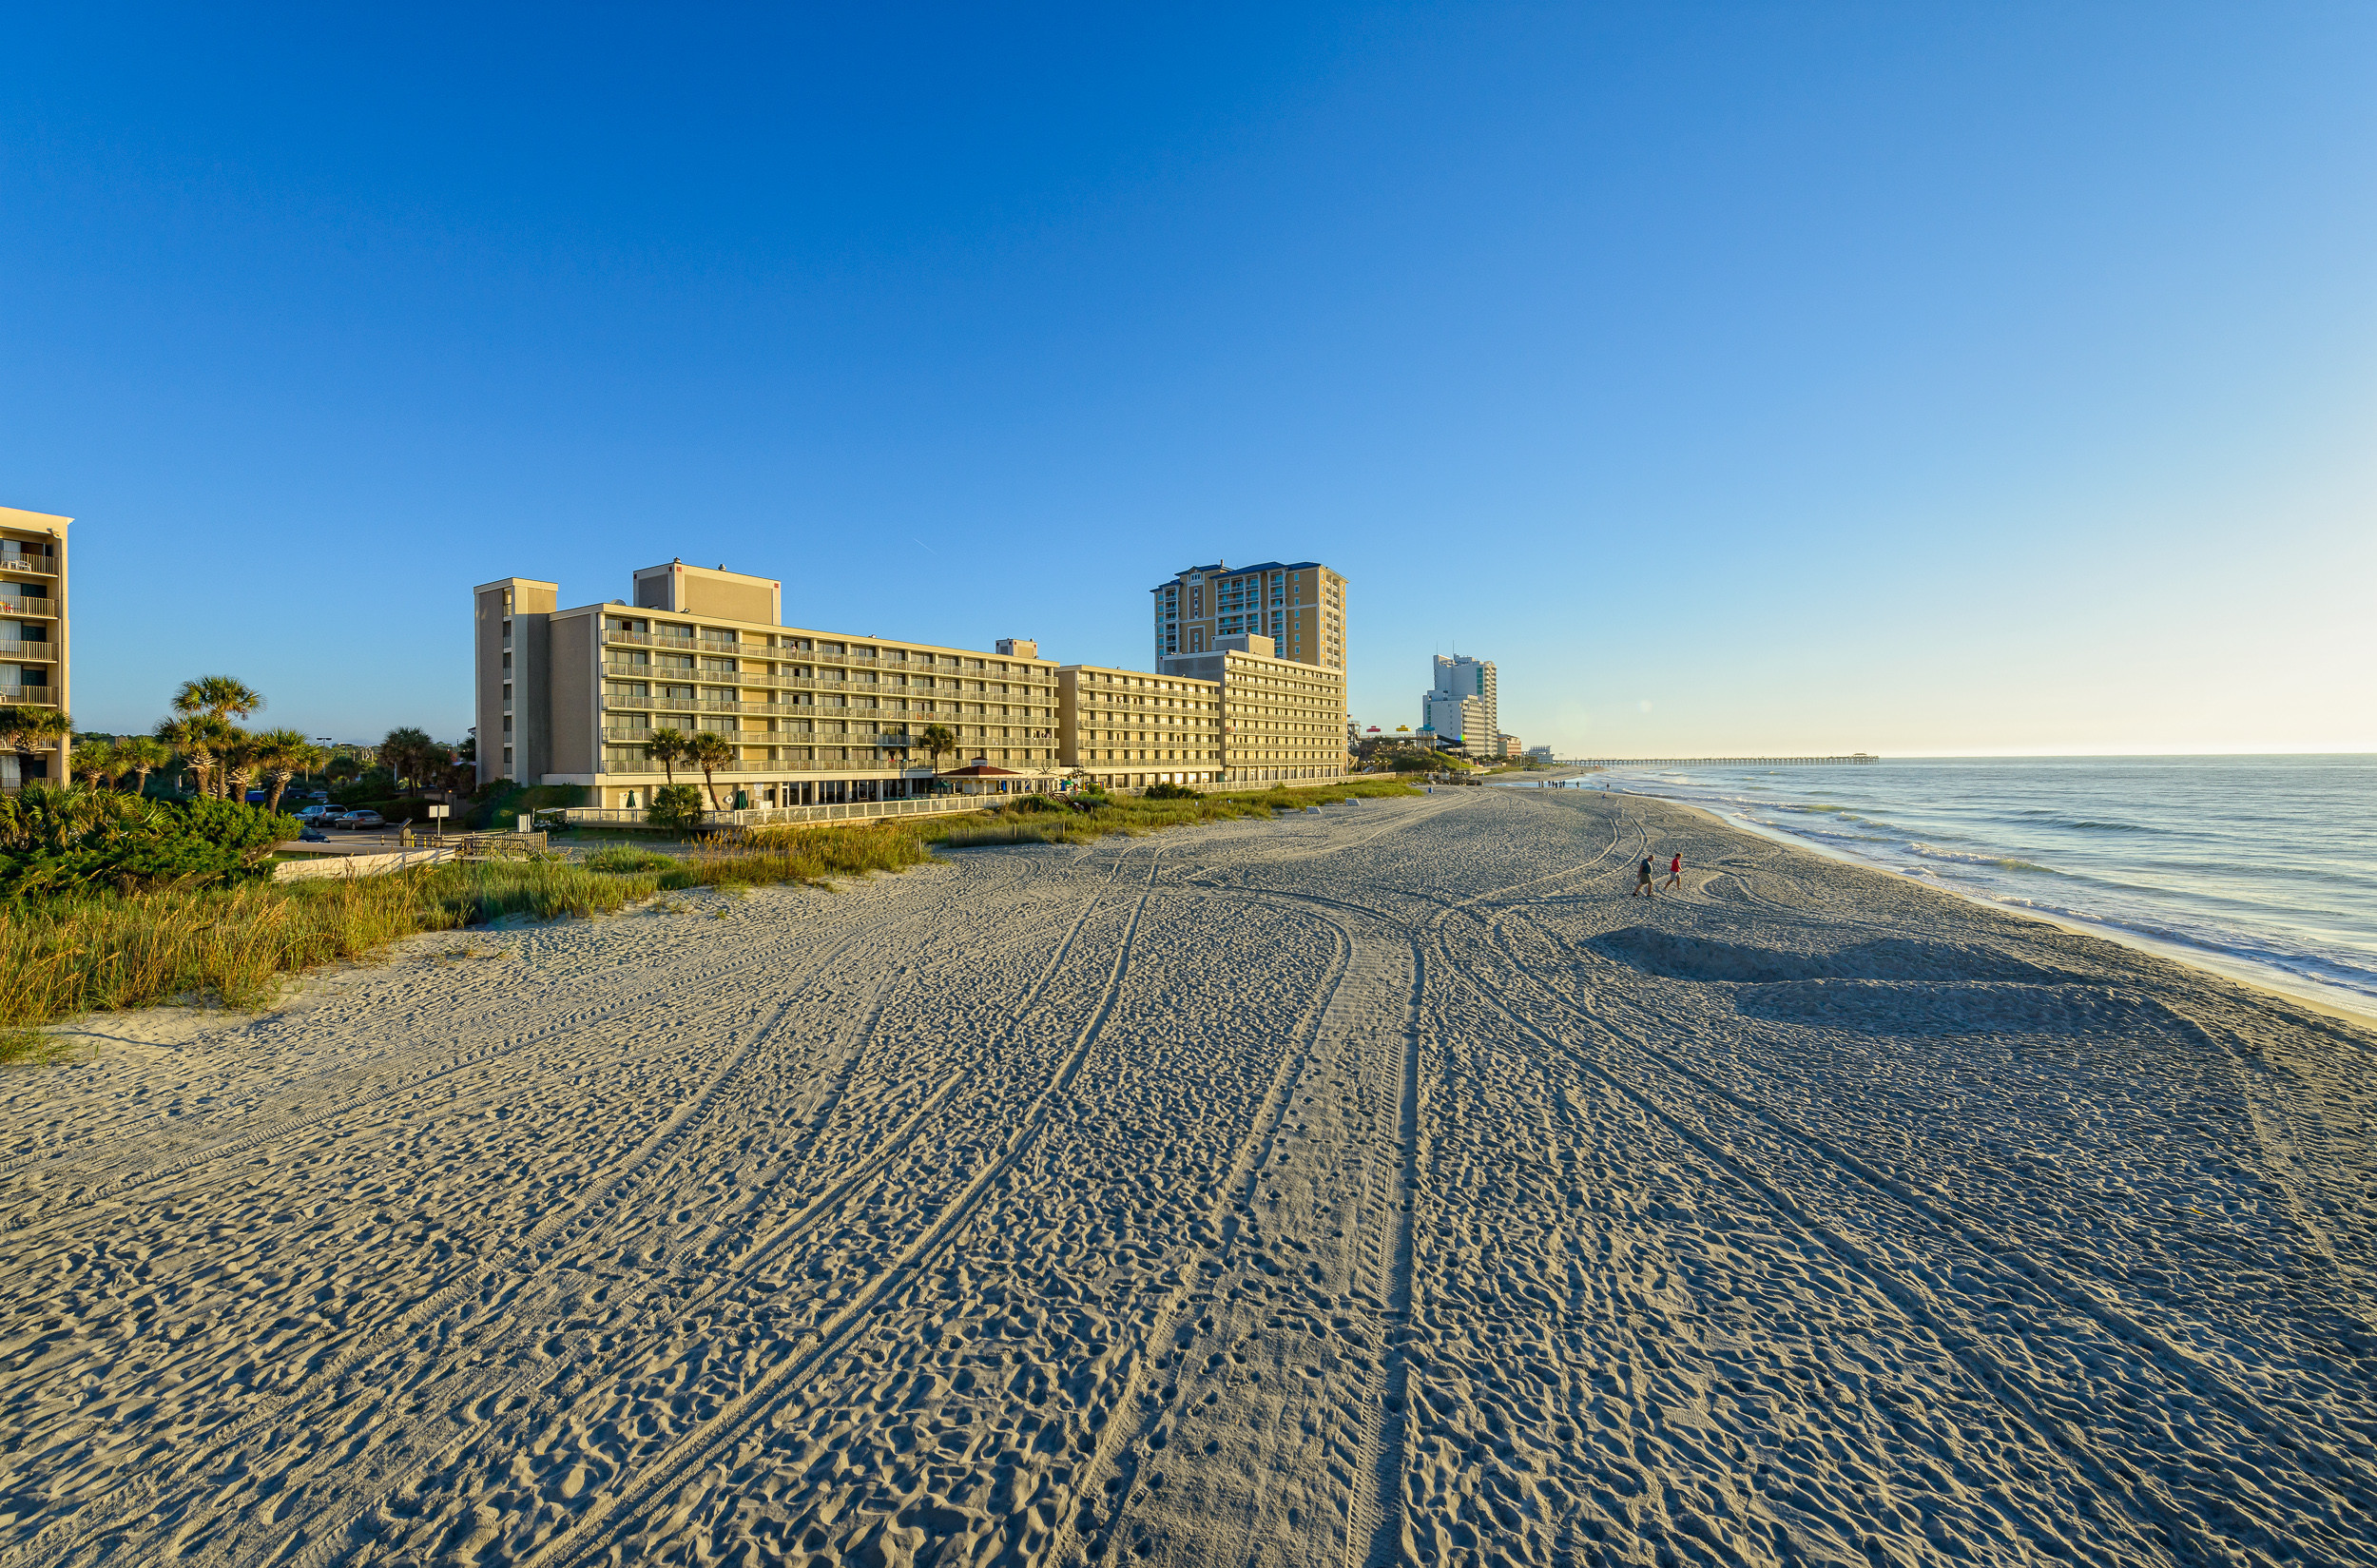 Senior Citizen Discounts at our Hotel in Myrtle Beach, SC | Seniors Enjoying Resort